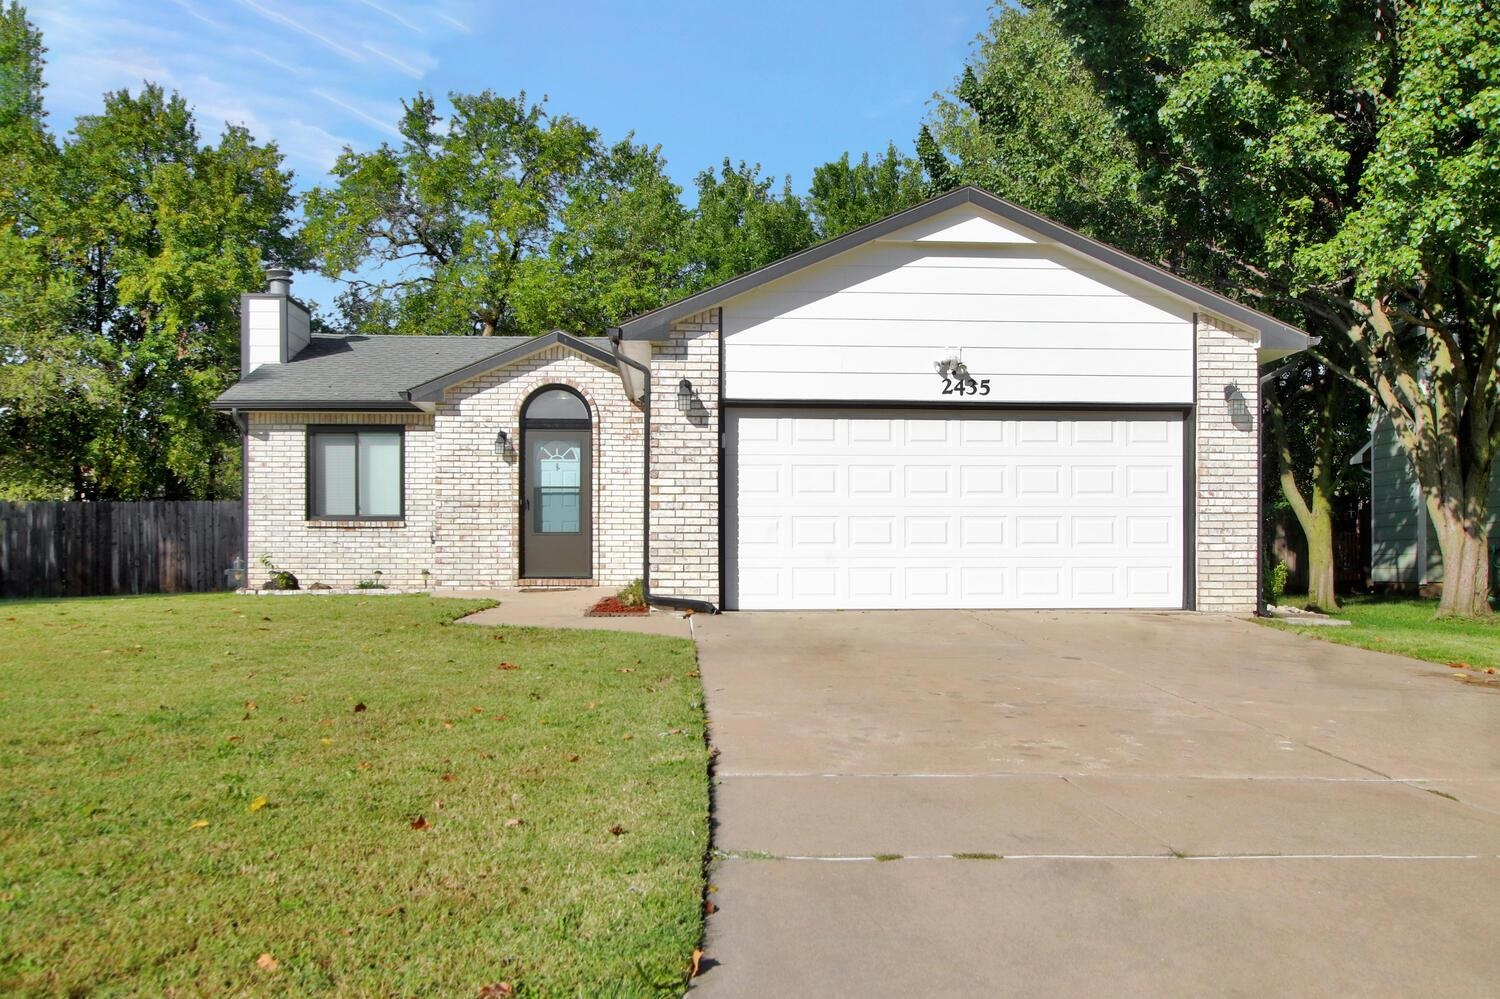 Here it is – 3 bedrooms, 3 full baths, and 2 car attached garage, and it is move in ready! Wood lami